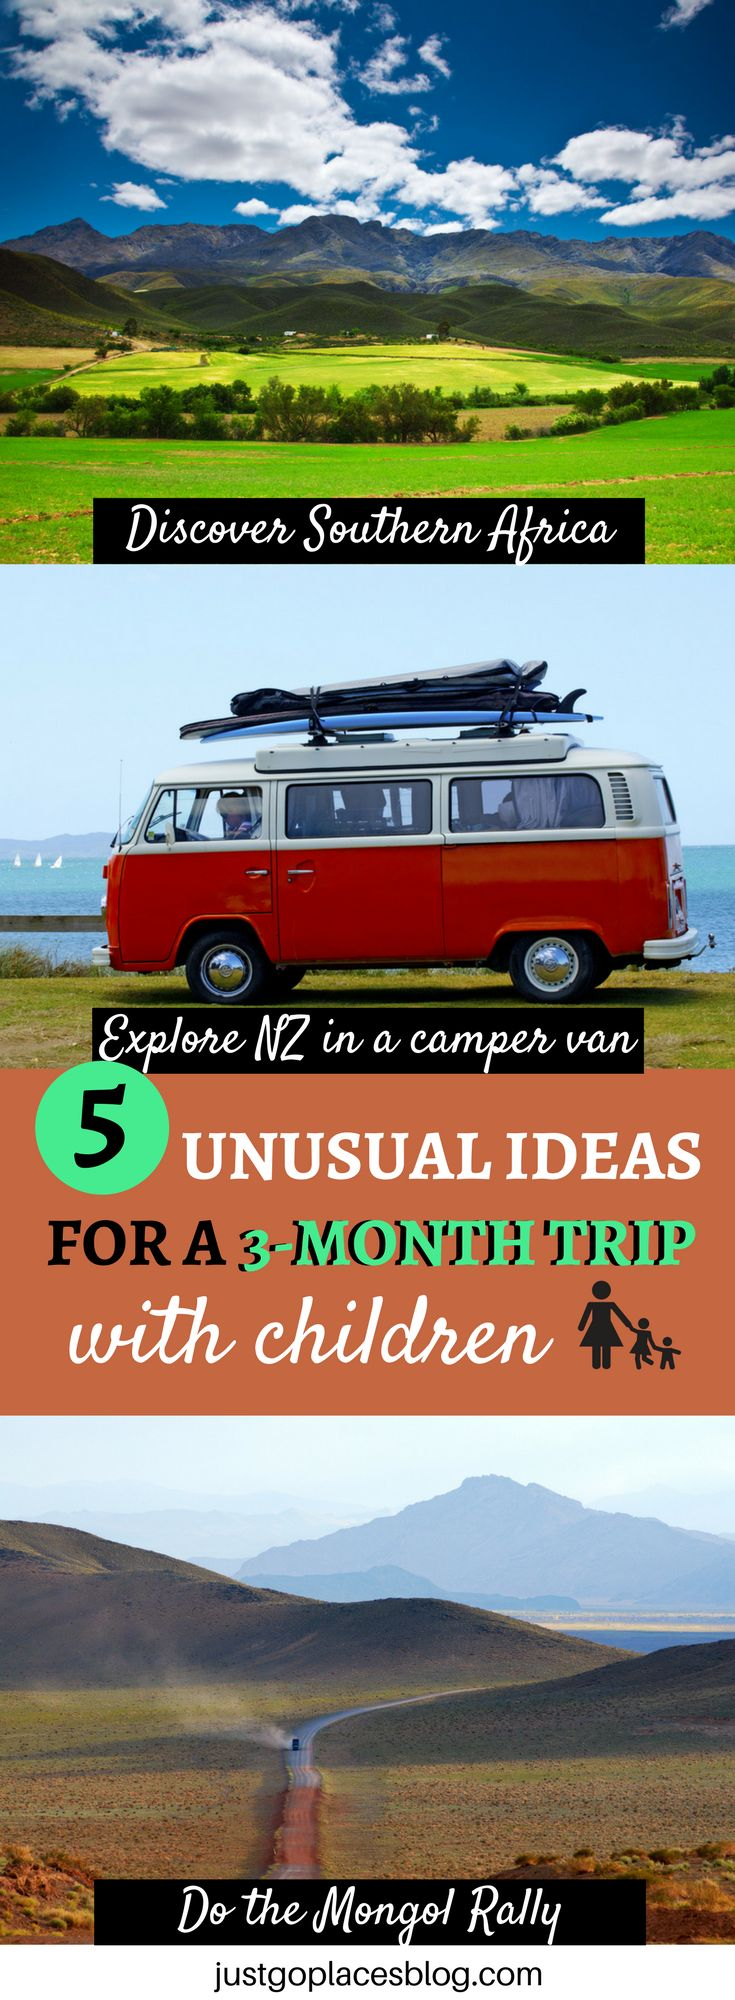 Tired and bored of the traditional family holiday? Check these unusual three month sabbatical ideas for a family escape from reality including travel New Zealand in a Camper Van,  Road Tripping the USA, the Mongol Rally and much more!!!  #FamilyTravel #TravelWithKids #FamilyItinerary - via @justgoplaces